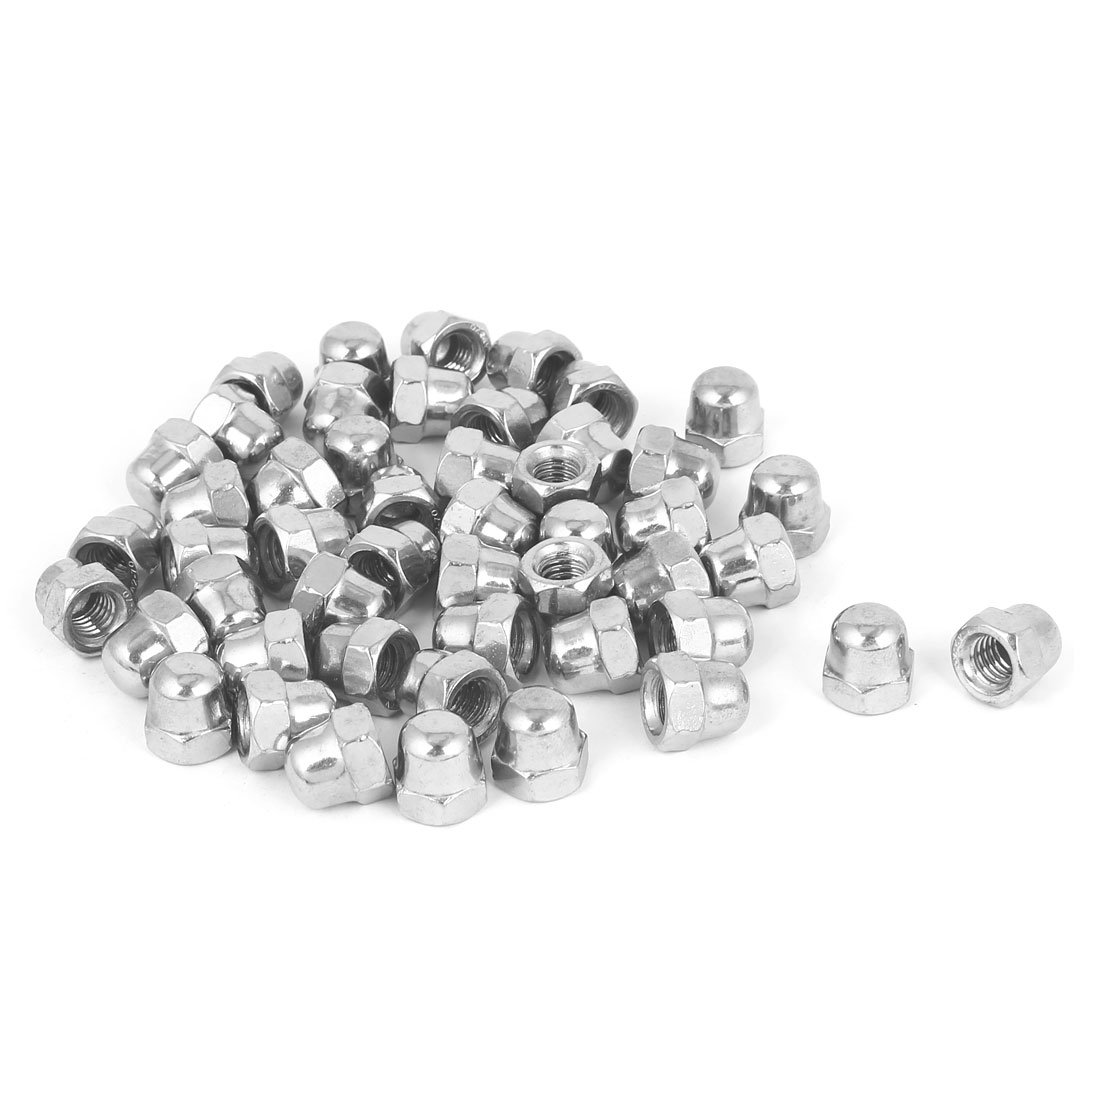 """5/16""""-18 304 Stainless Steel Dome Head Cap Hexagon Nuts Silver Tone 50pcs"""